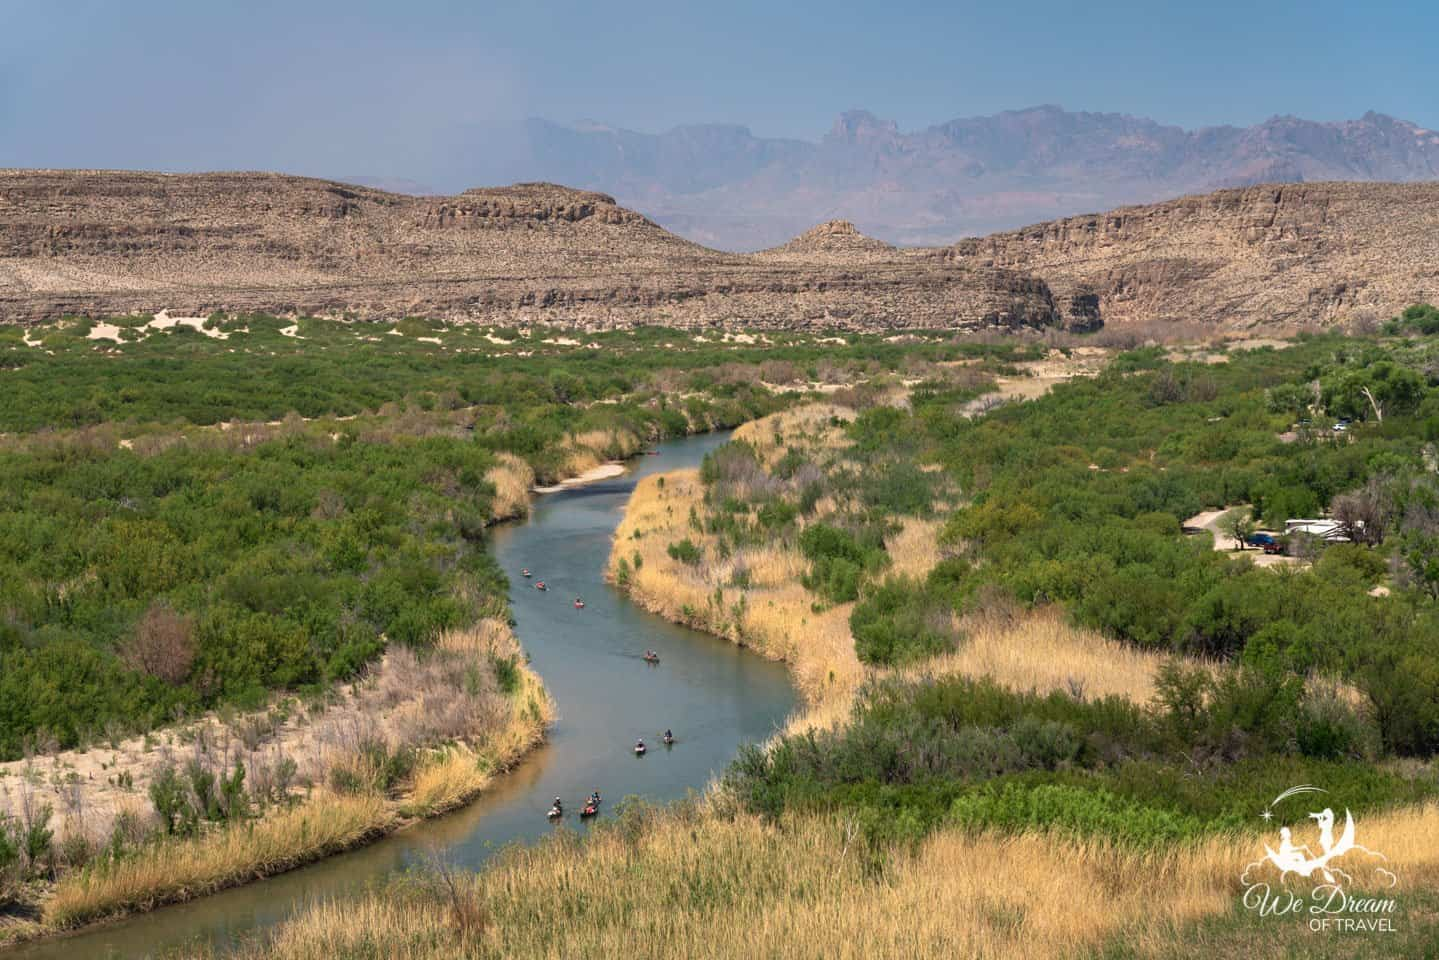 Kayakers navigate the Rio Grande river in this photo from the Rio Grande Nature Trail.